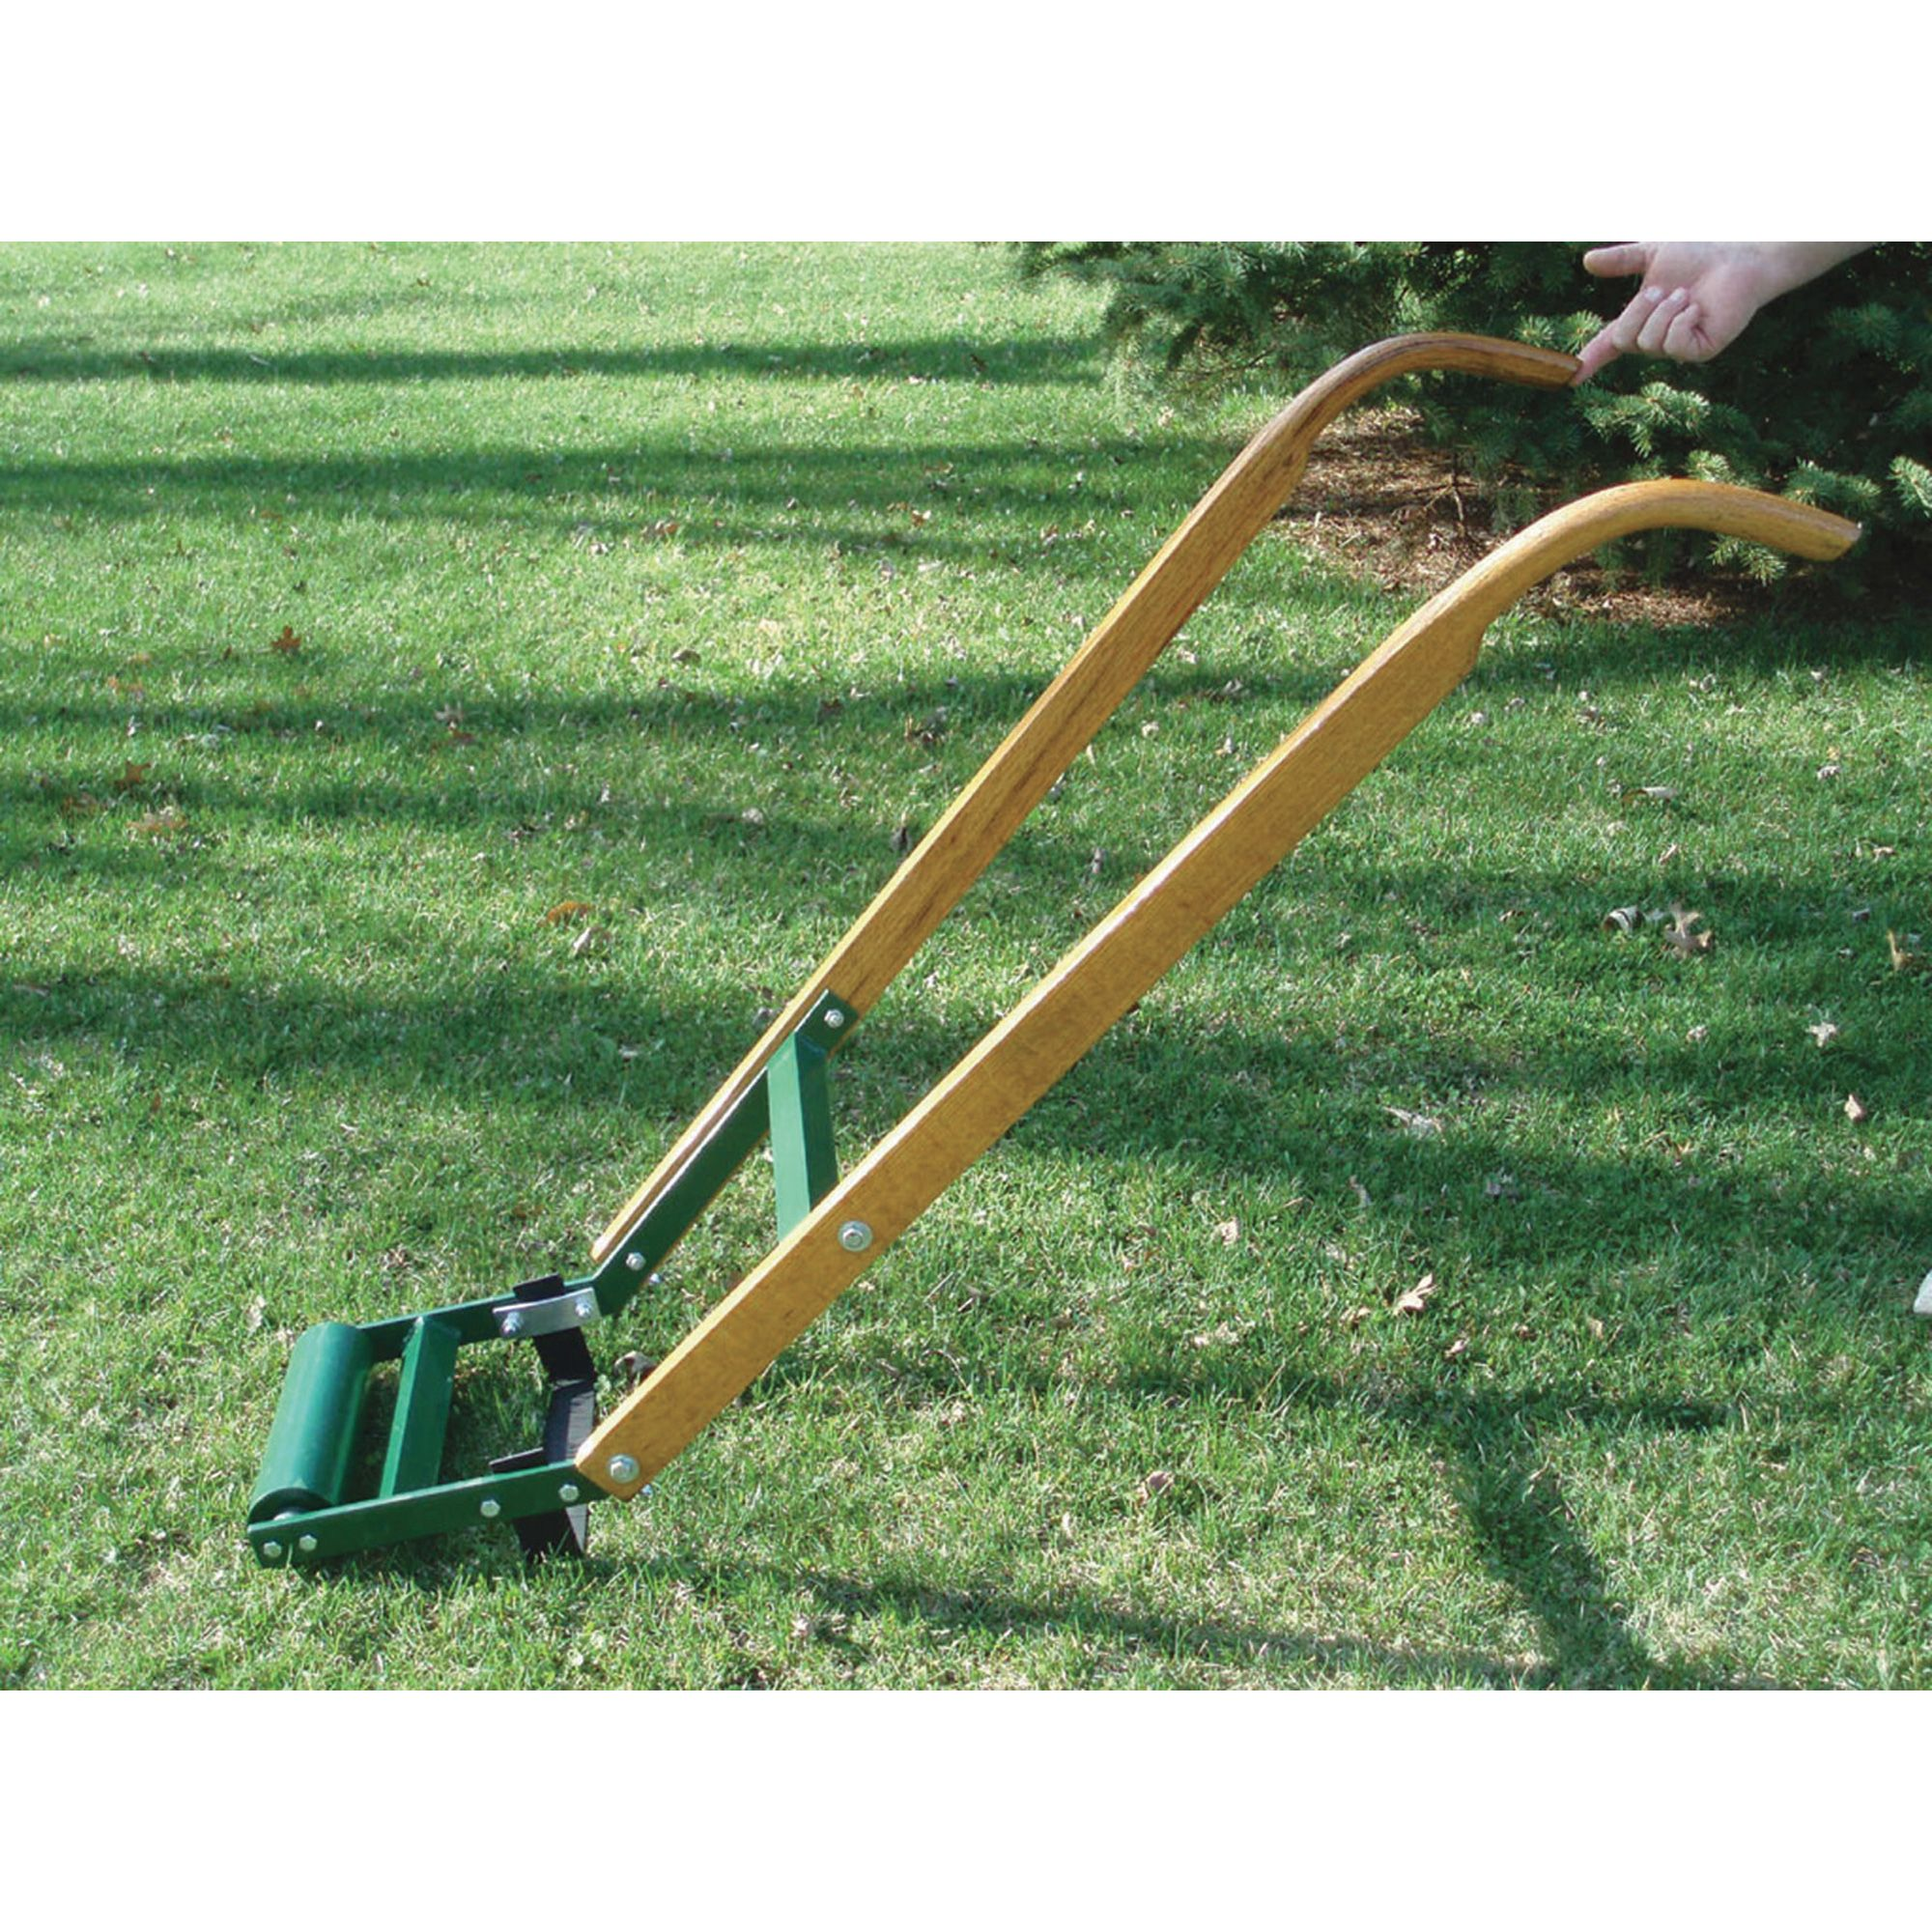 Pin By G K On 2016 New House Yard Sod Cutter Landscaping Tools Paint Your House